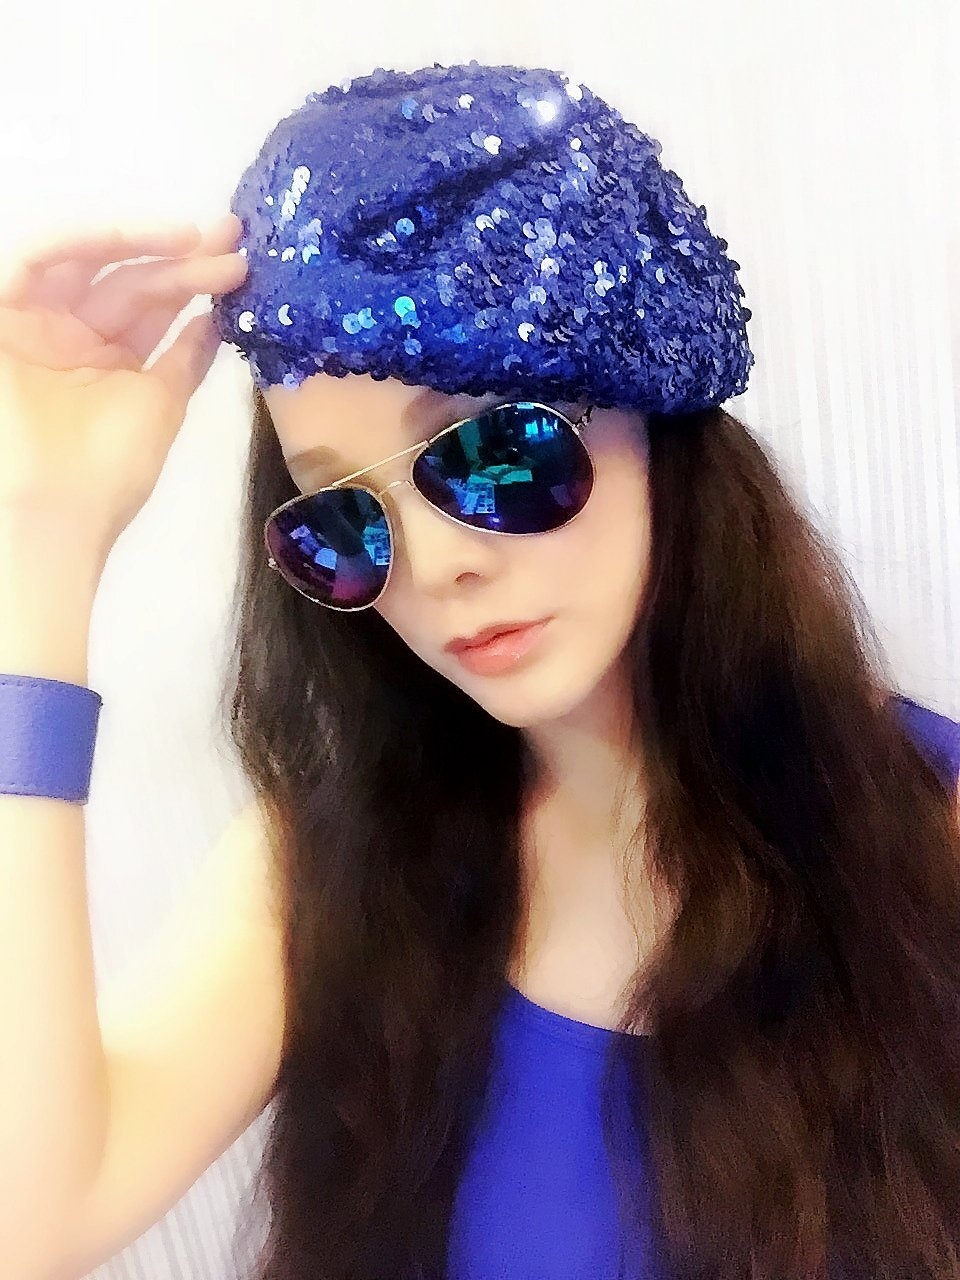 Deep Blue Sequin Beret,Caps, Hats, Womens Hats, sequined hat, beret, Gimme Cap, Fashion Hats, Personality Hats, Show Hats, Beautiful Cap,Hipster,Fashion,Gift ,Show, Party ,Holiday